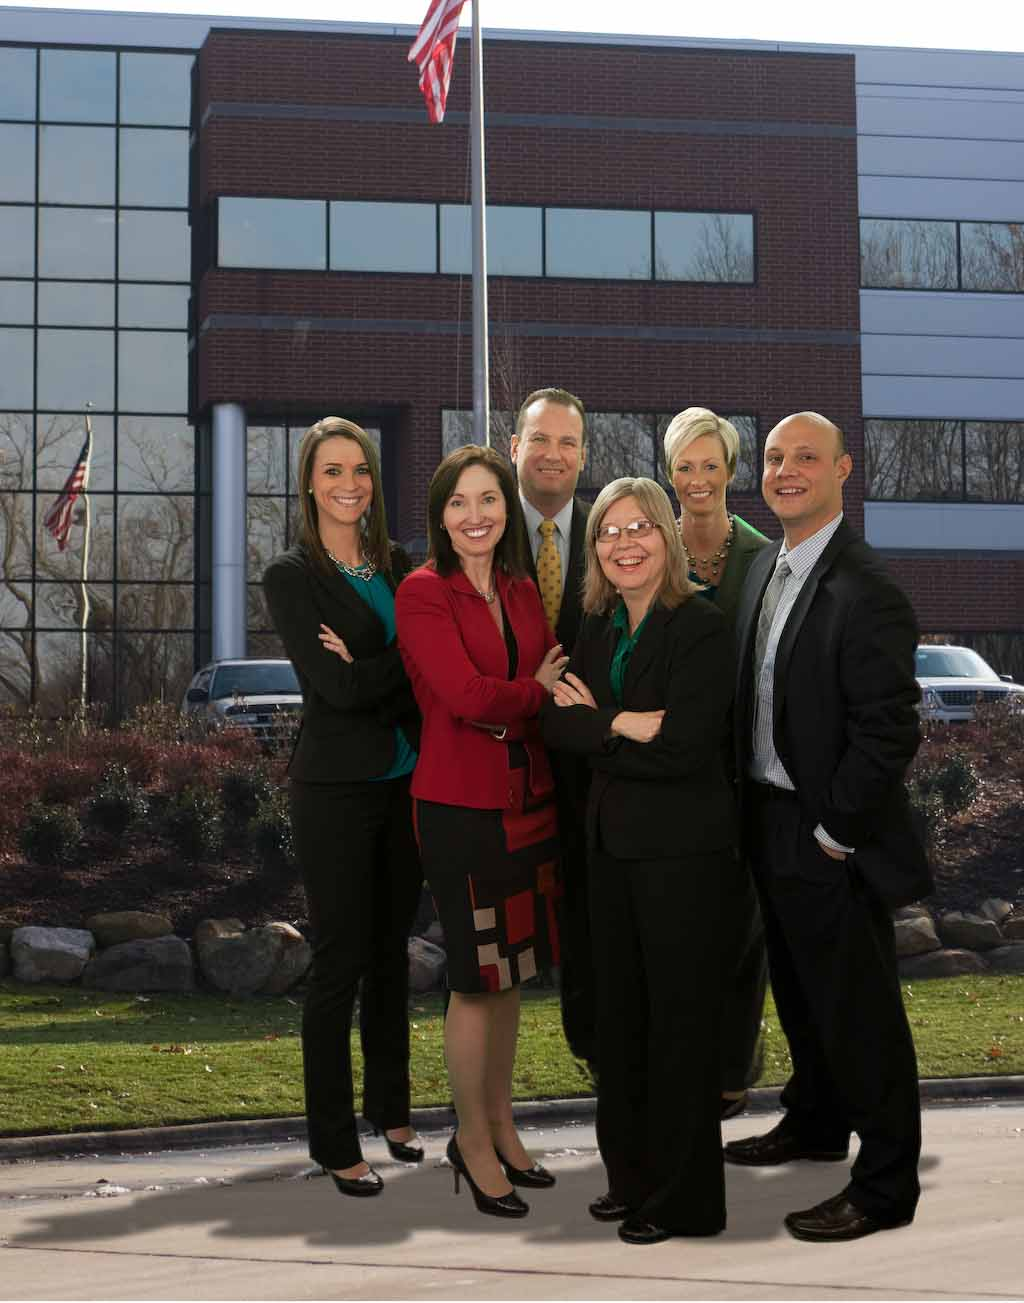 Cleveland Ohio Corporate Photography